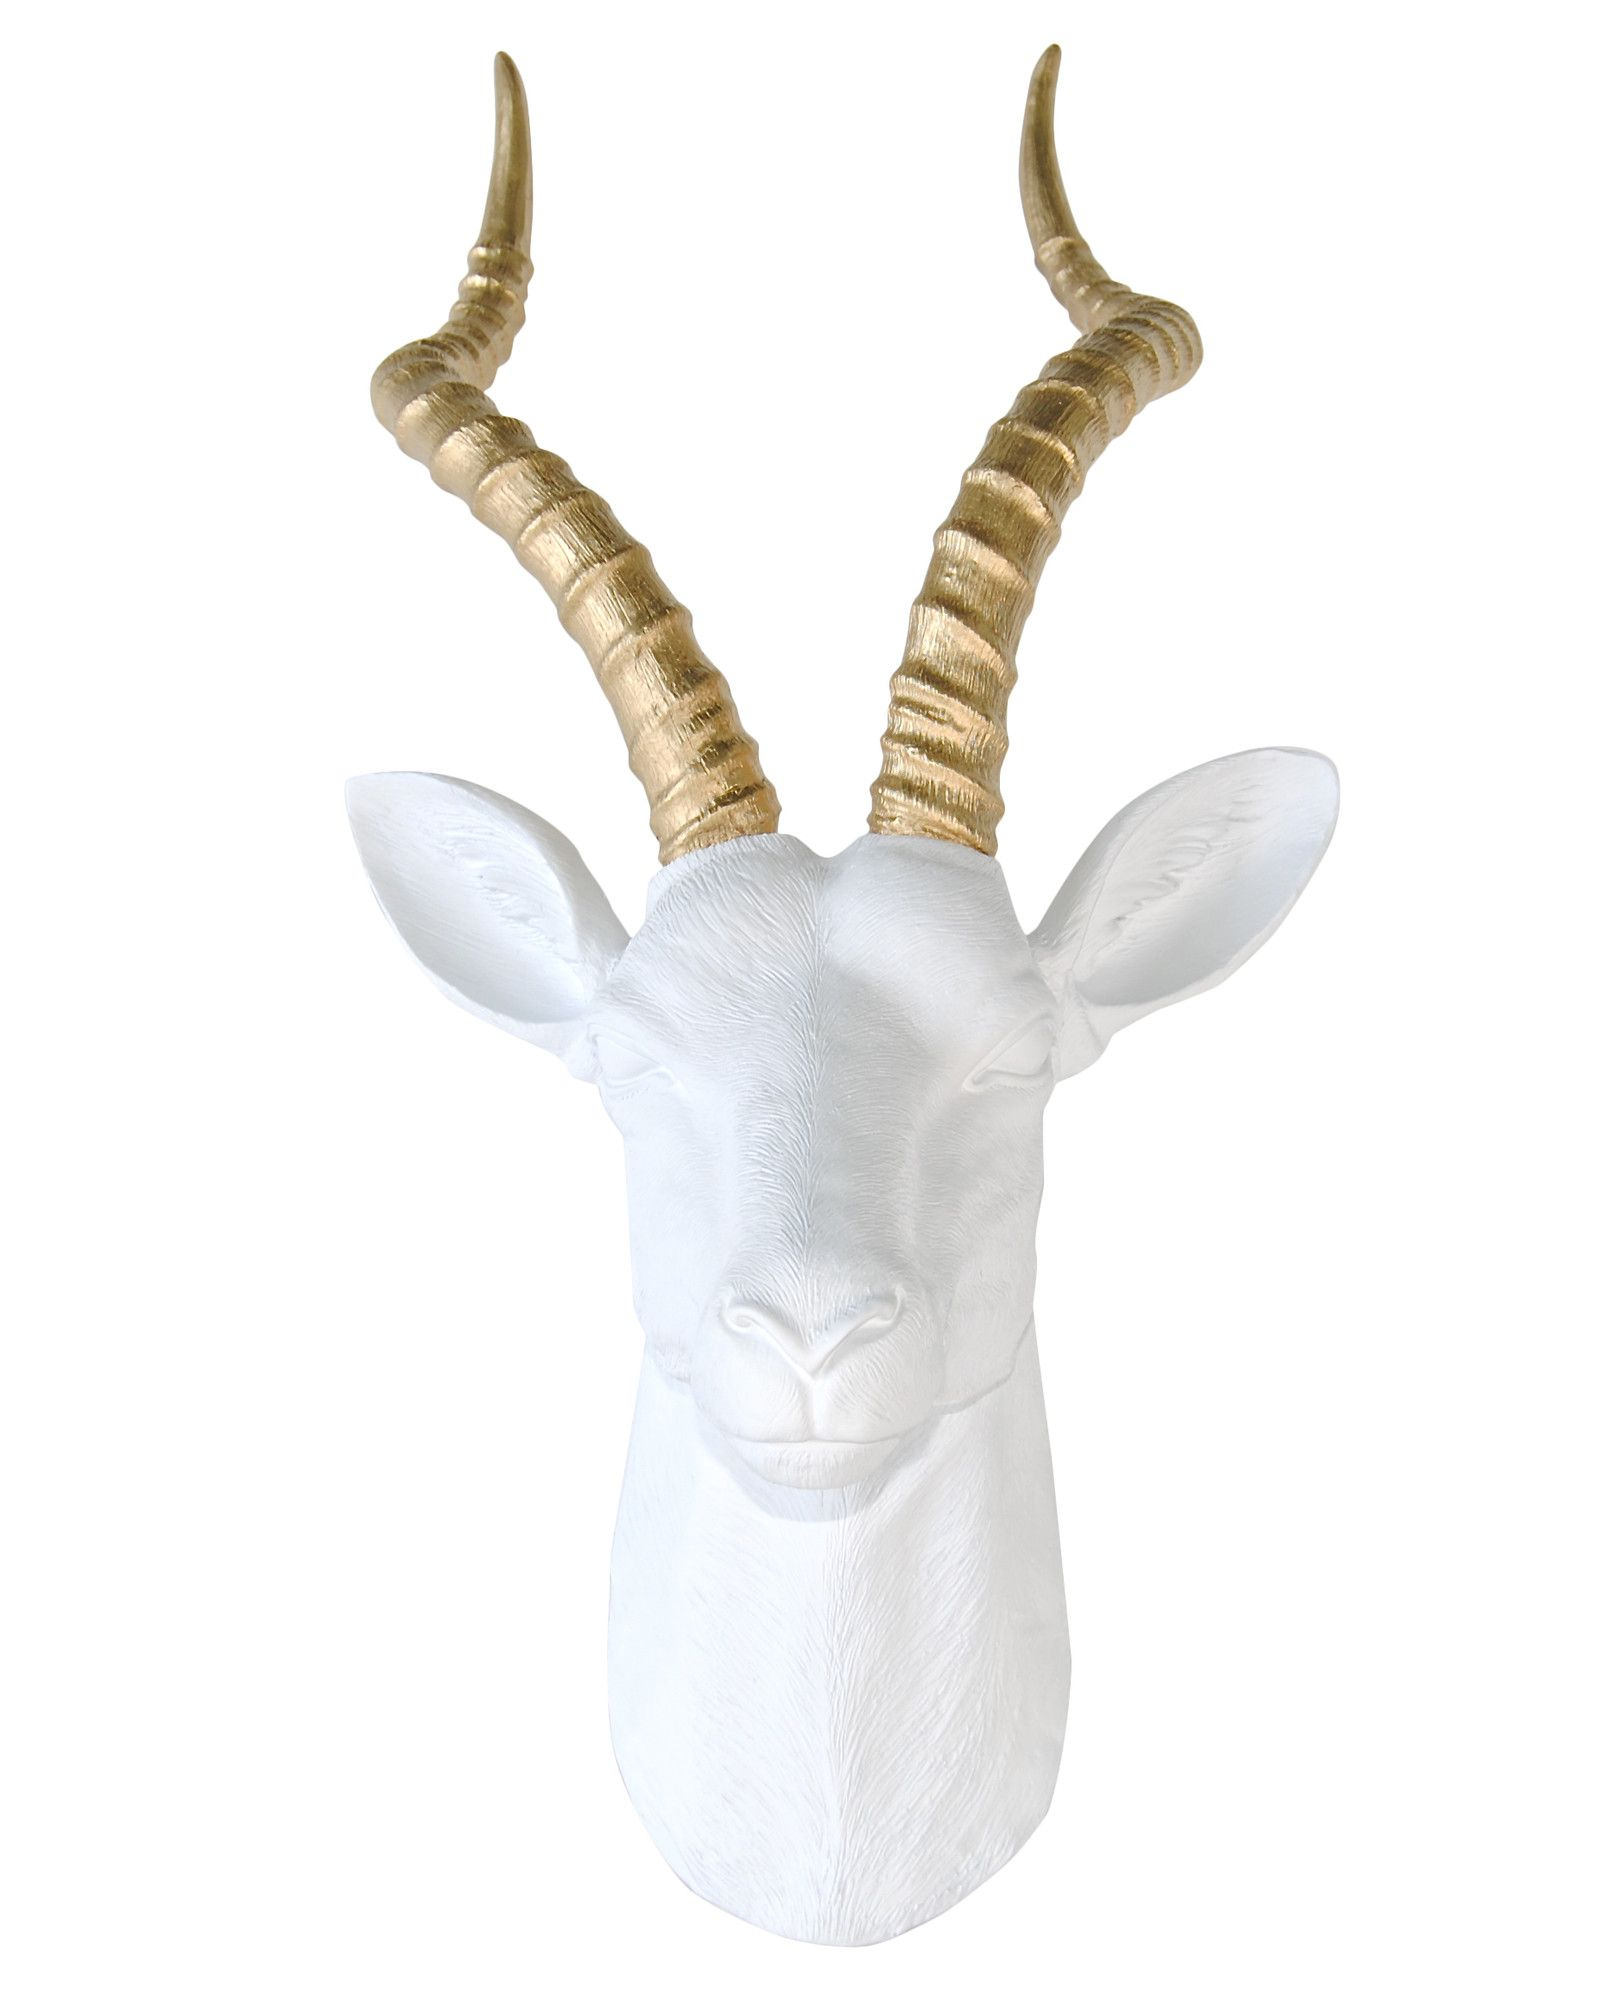 Large Antelope Head Wall Décor | Taxidermy | Faux Taxidermy regarding Atlantis Faux Taxidermy Wall Decor (Image 14 of 30)